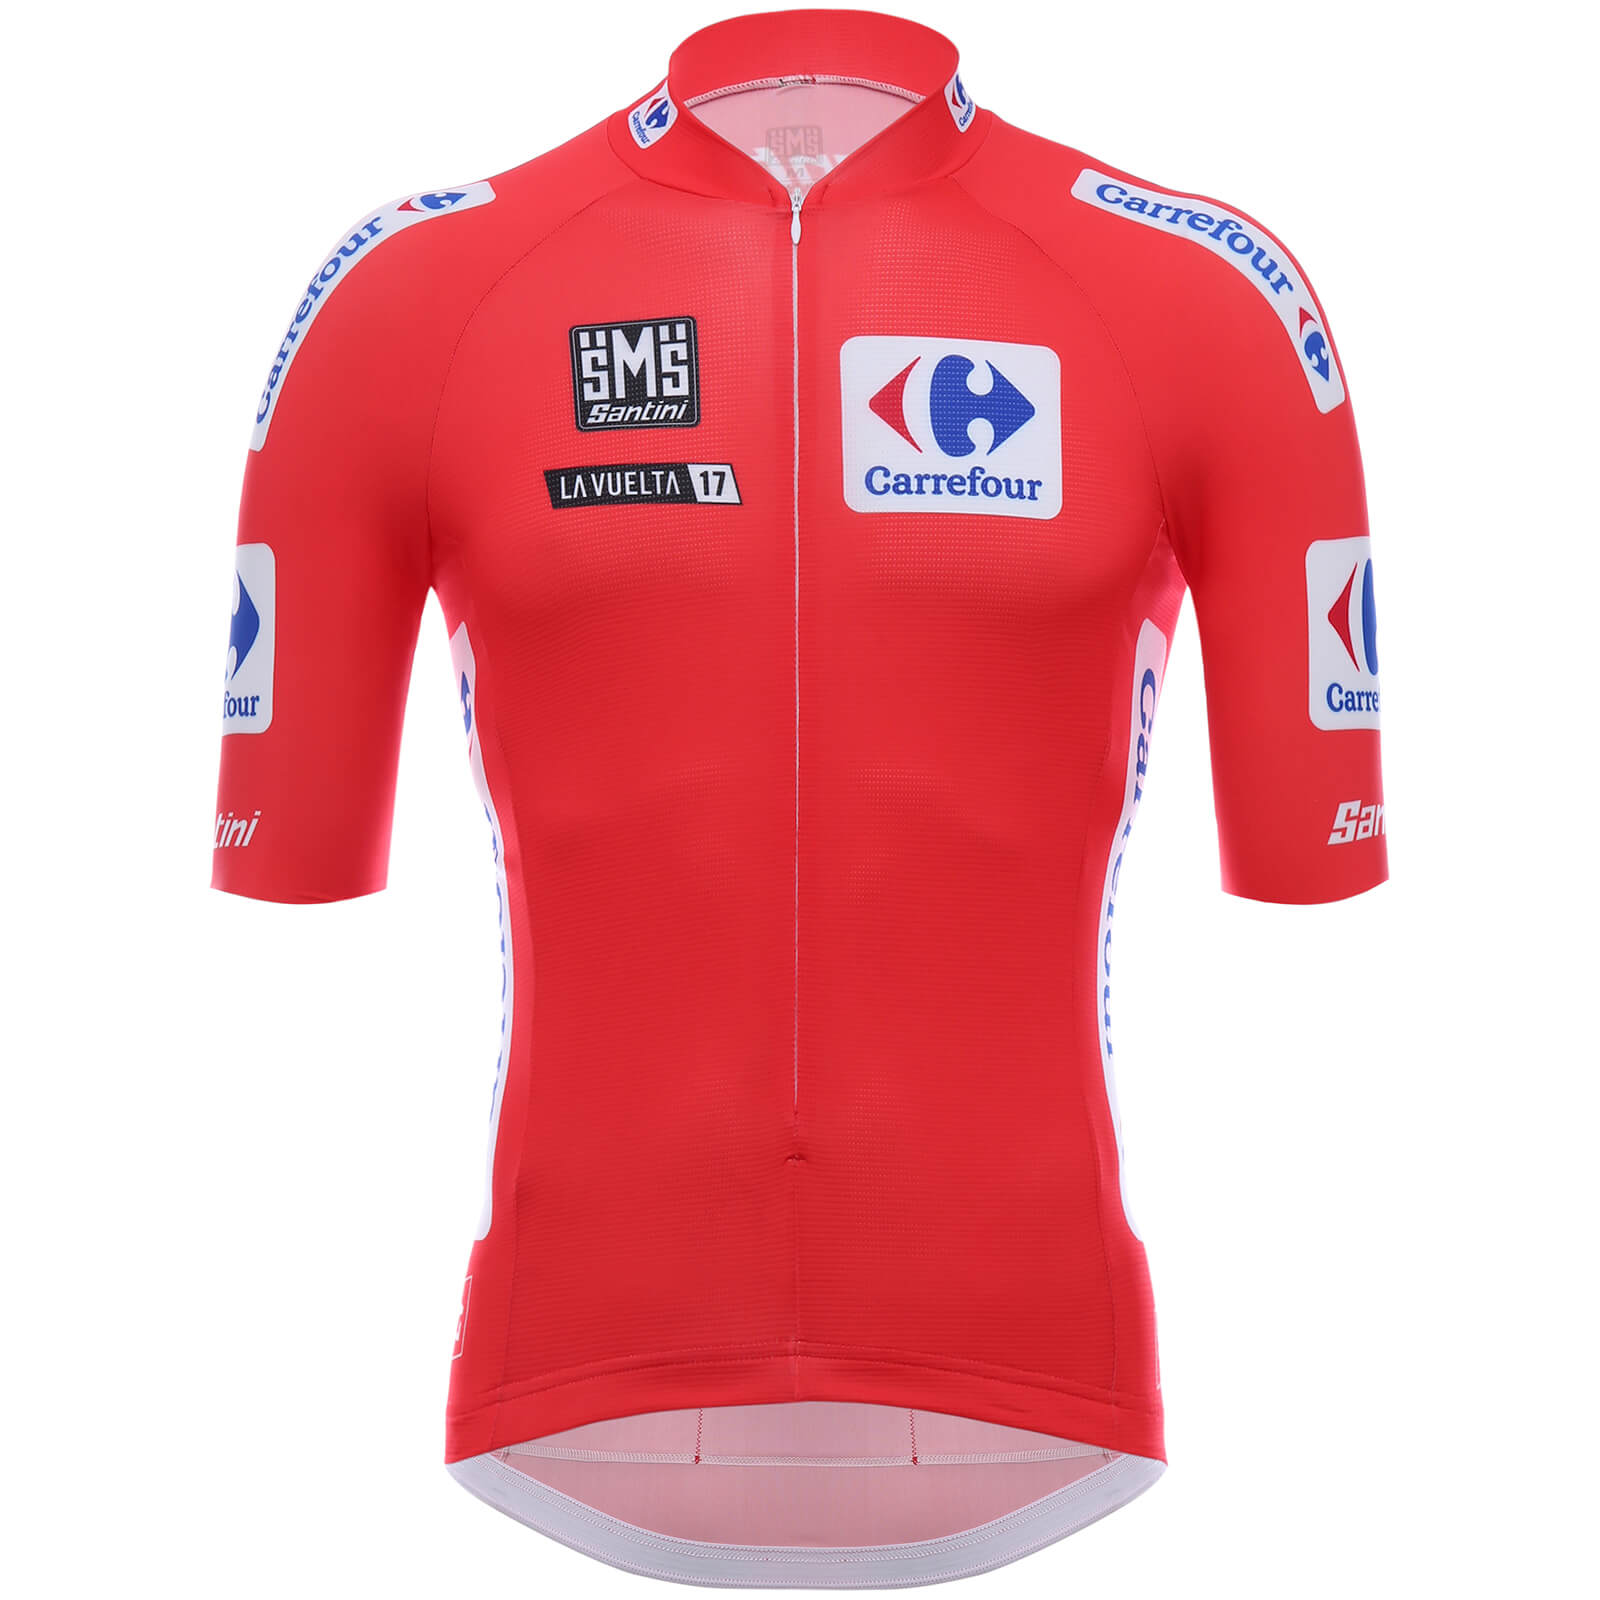 Santini La Vuelta 2017 Leaders Jersey - Red